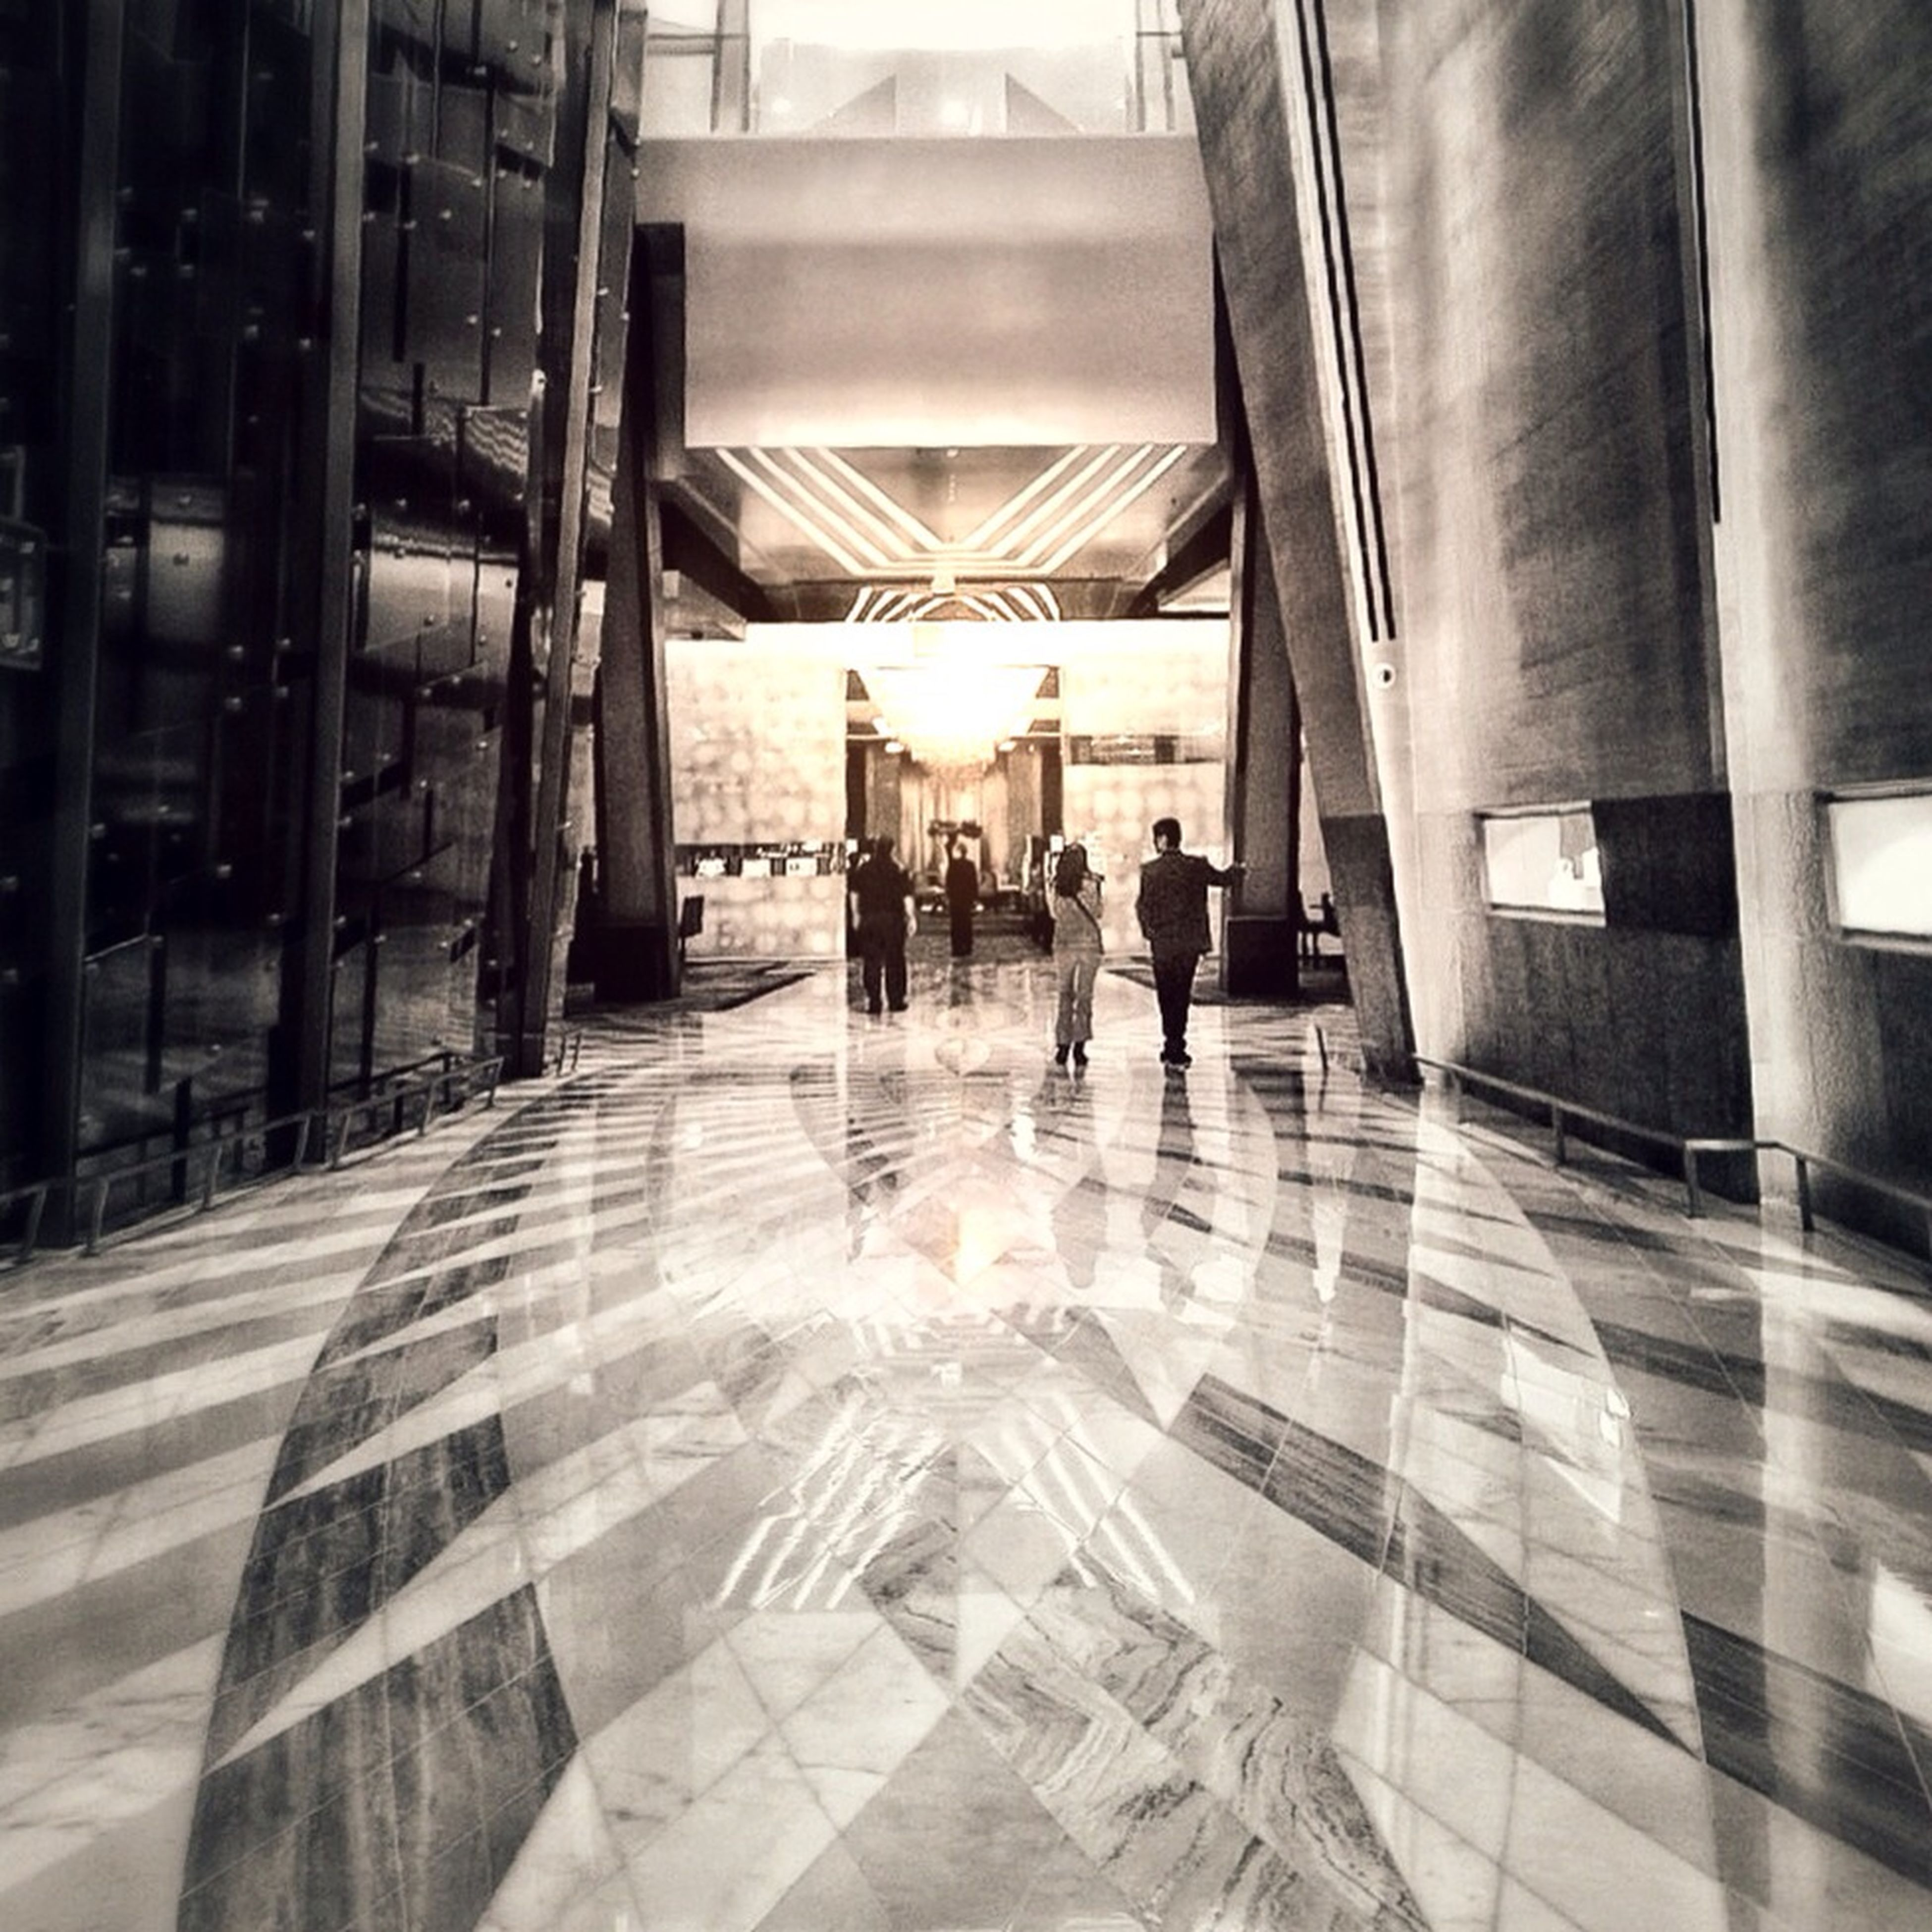 architecture, indoors, built structure, men, person, architectural column, lifestyles, walking, ceiling, corridor, the way forward, column, tiled floor, leisure activity, flooring, full length, incidental people, city life, building